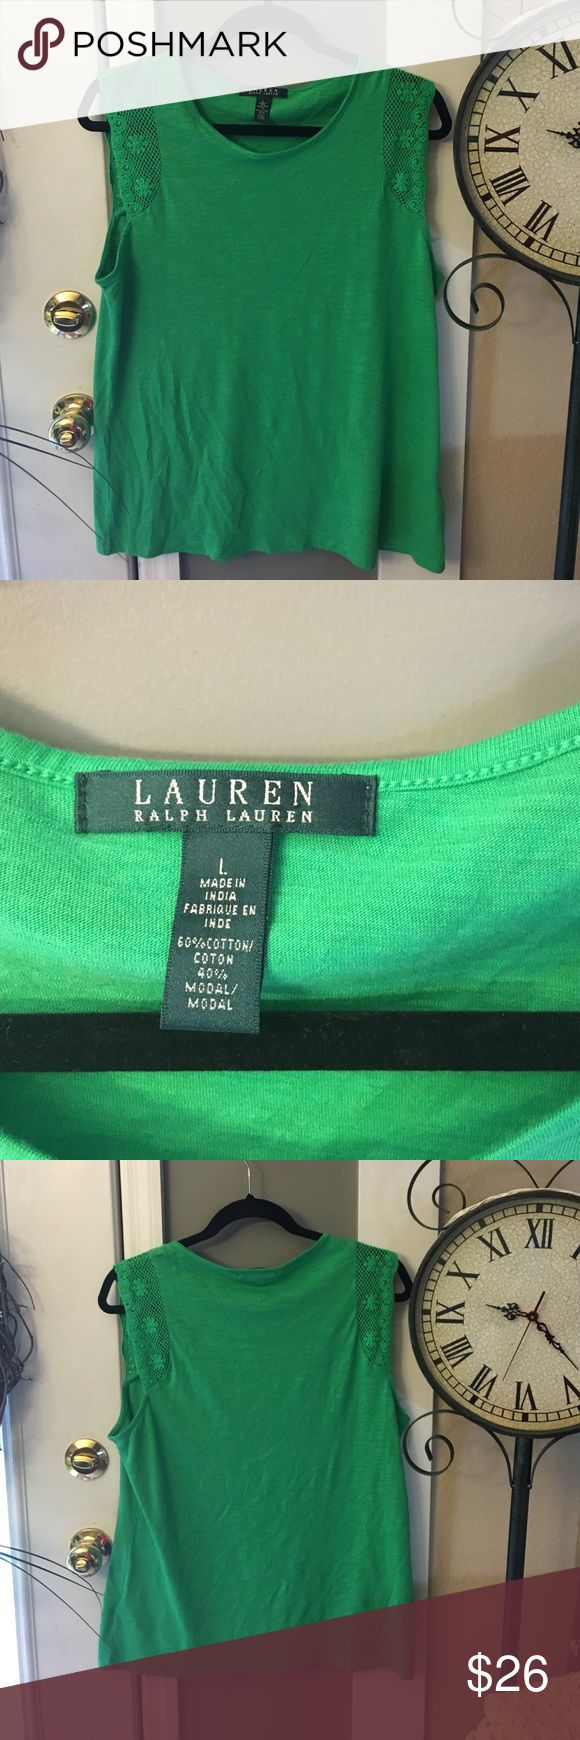 NWOT, Lauren By Ralph Lauren GreenTop,🎉 lowest$$ Brand new without tags, never worn, pic of materials in photos. Cute lace detail on shoulders. Green women's top sleeveless. 😍 Lauren Ralph Lauren Tops Blouses